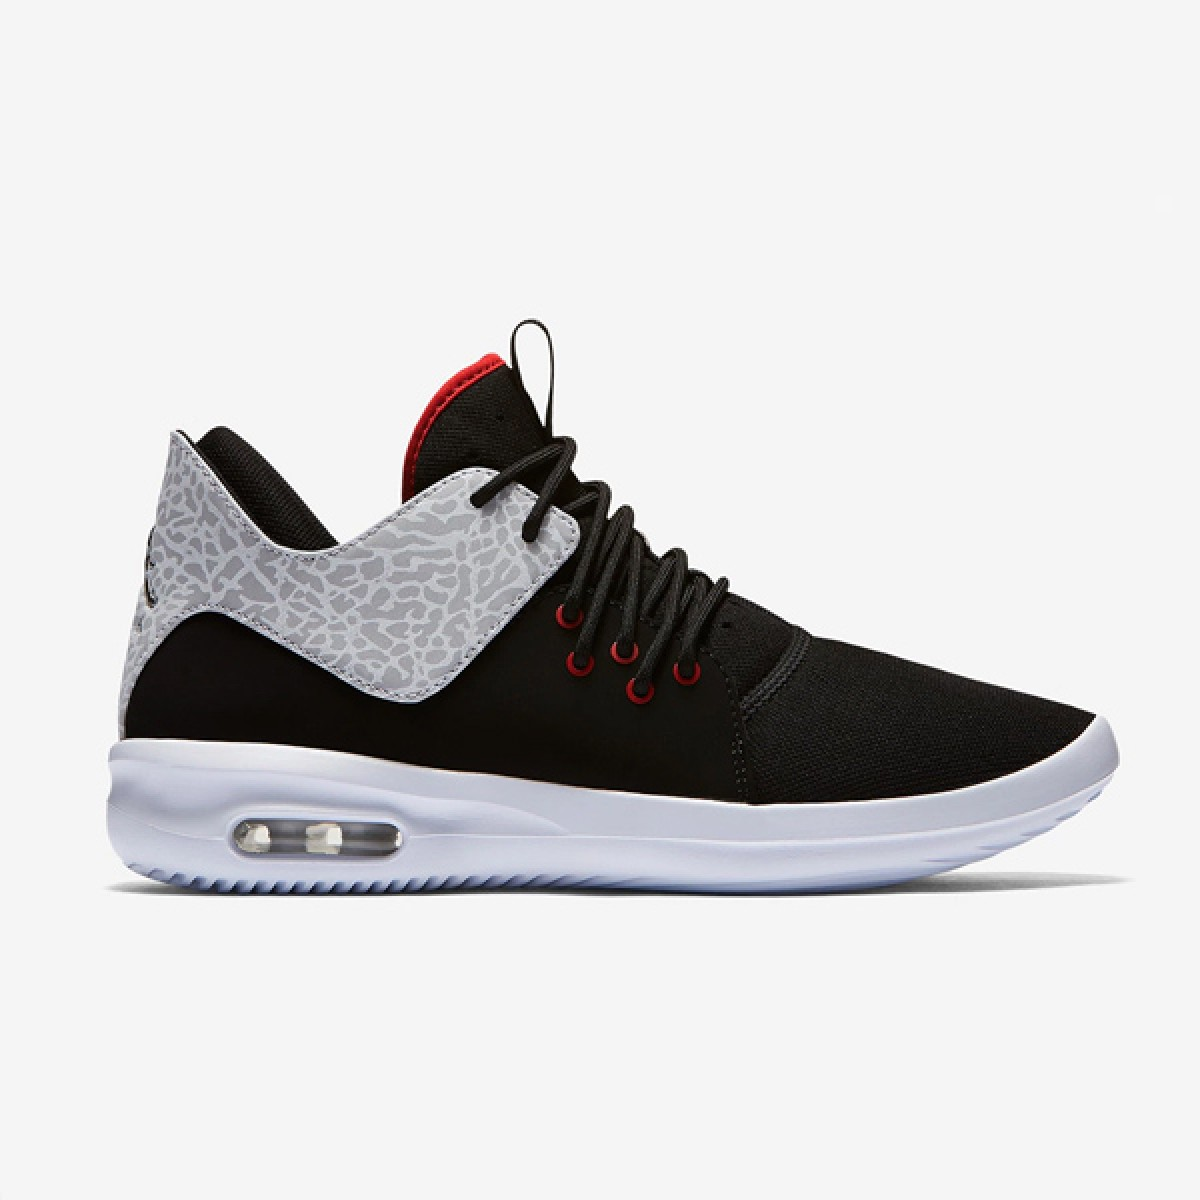 06a26822f9e2 Buy Air Jordan First Class  Bred  Basketball shoes   sneakers